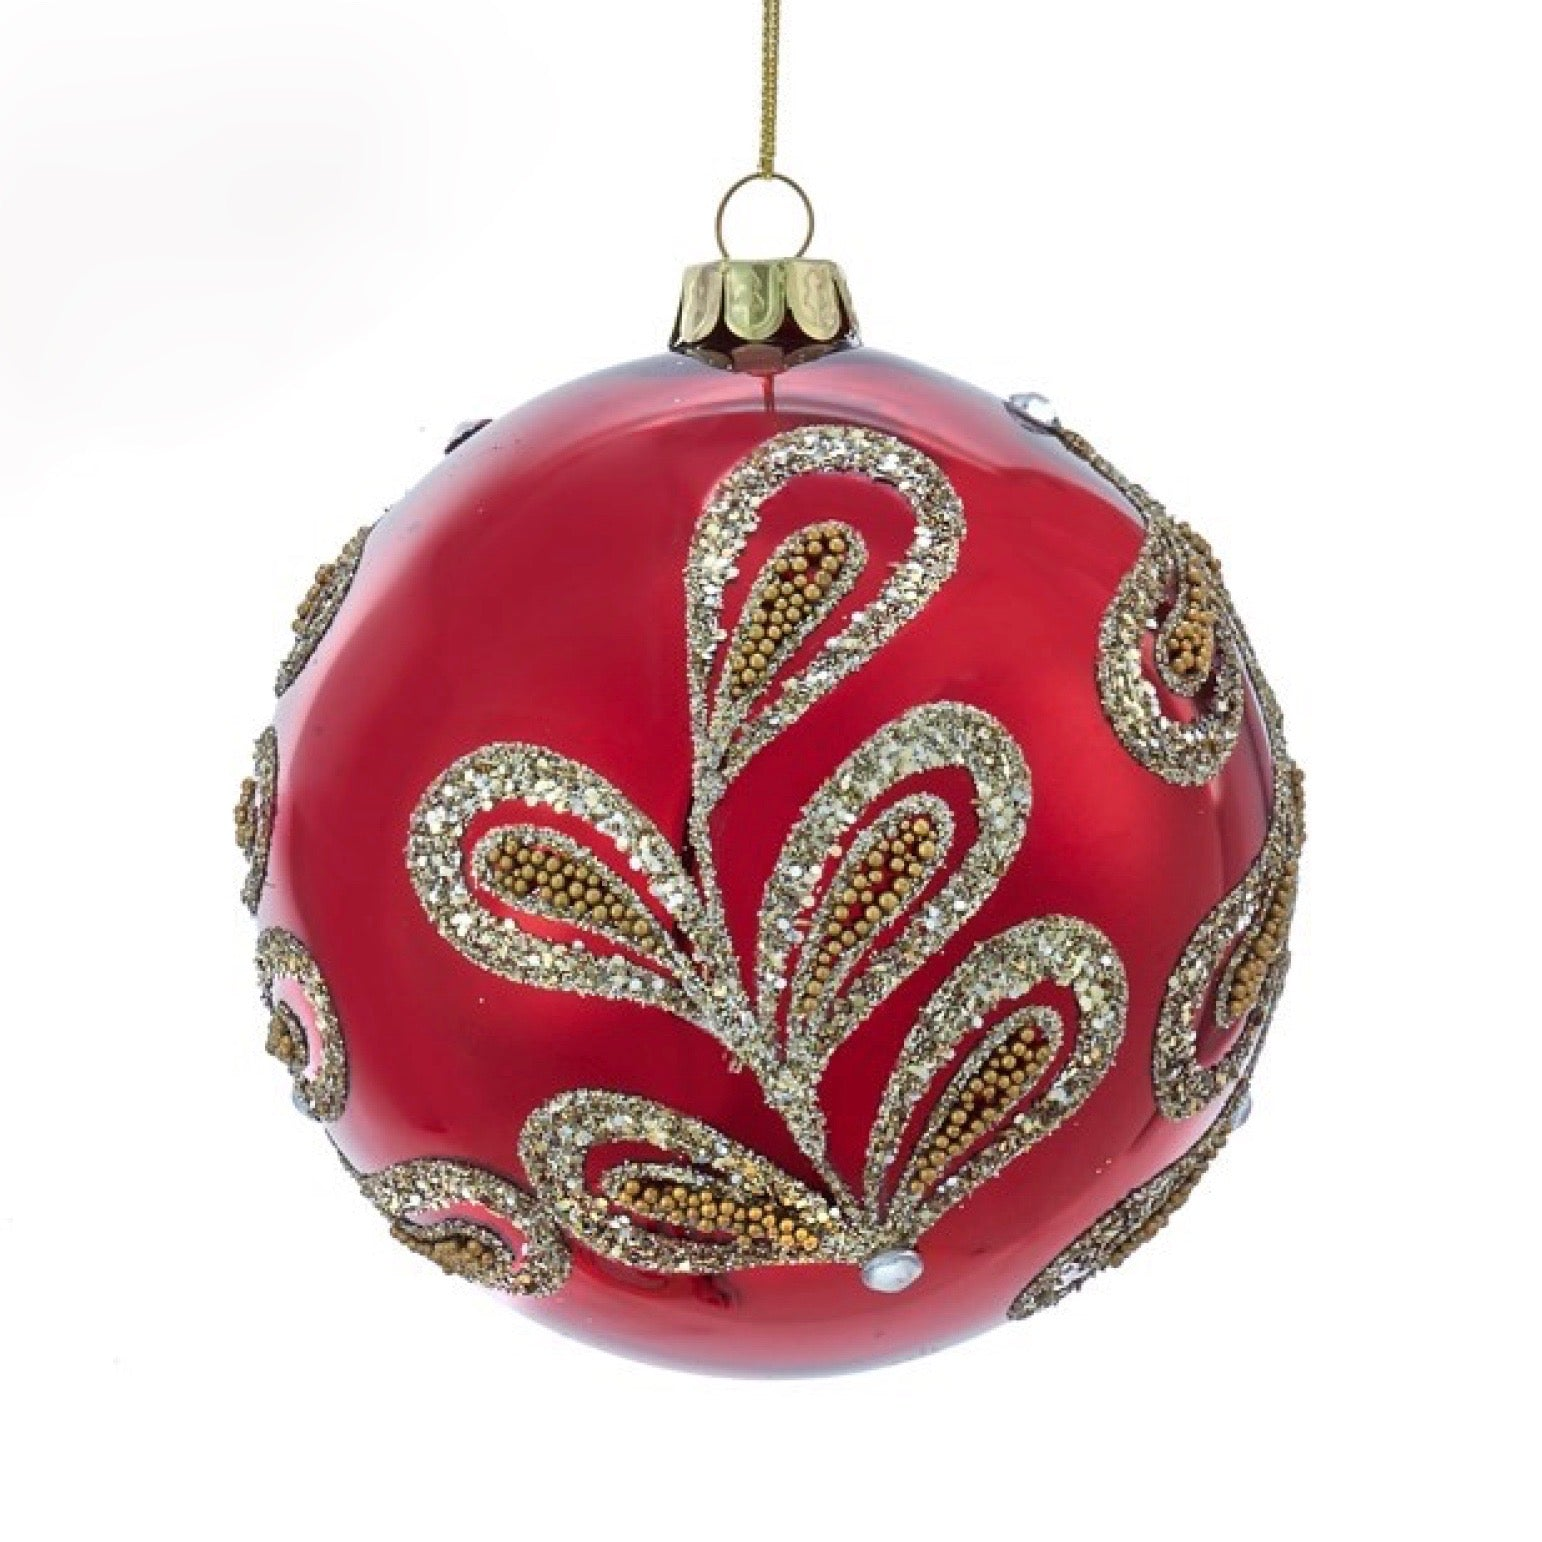 Kurt Adler Ruby Red and Platinum Glass Ball Ornaments | Putti Christmas